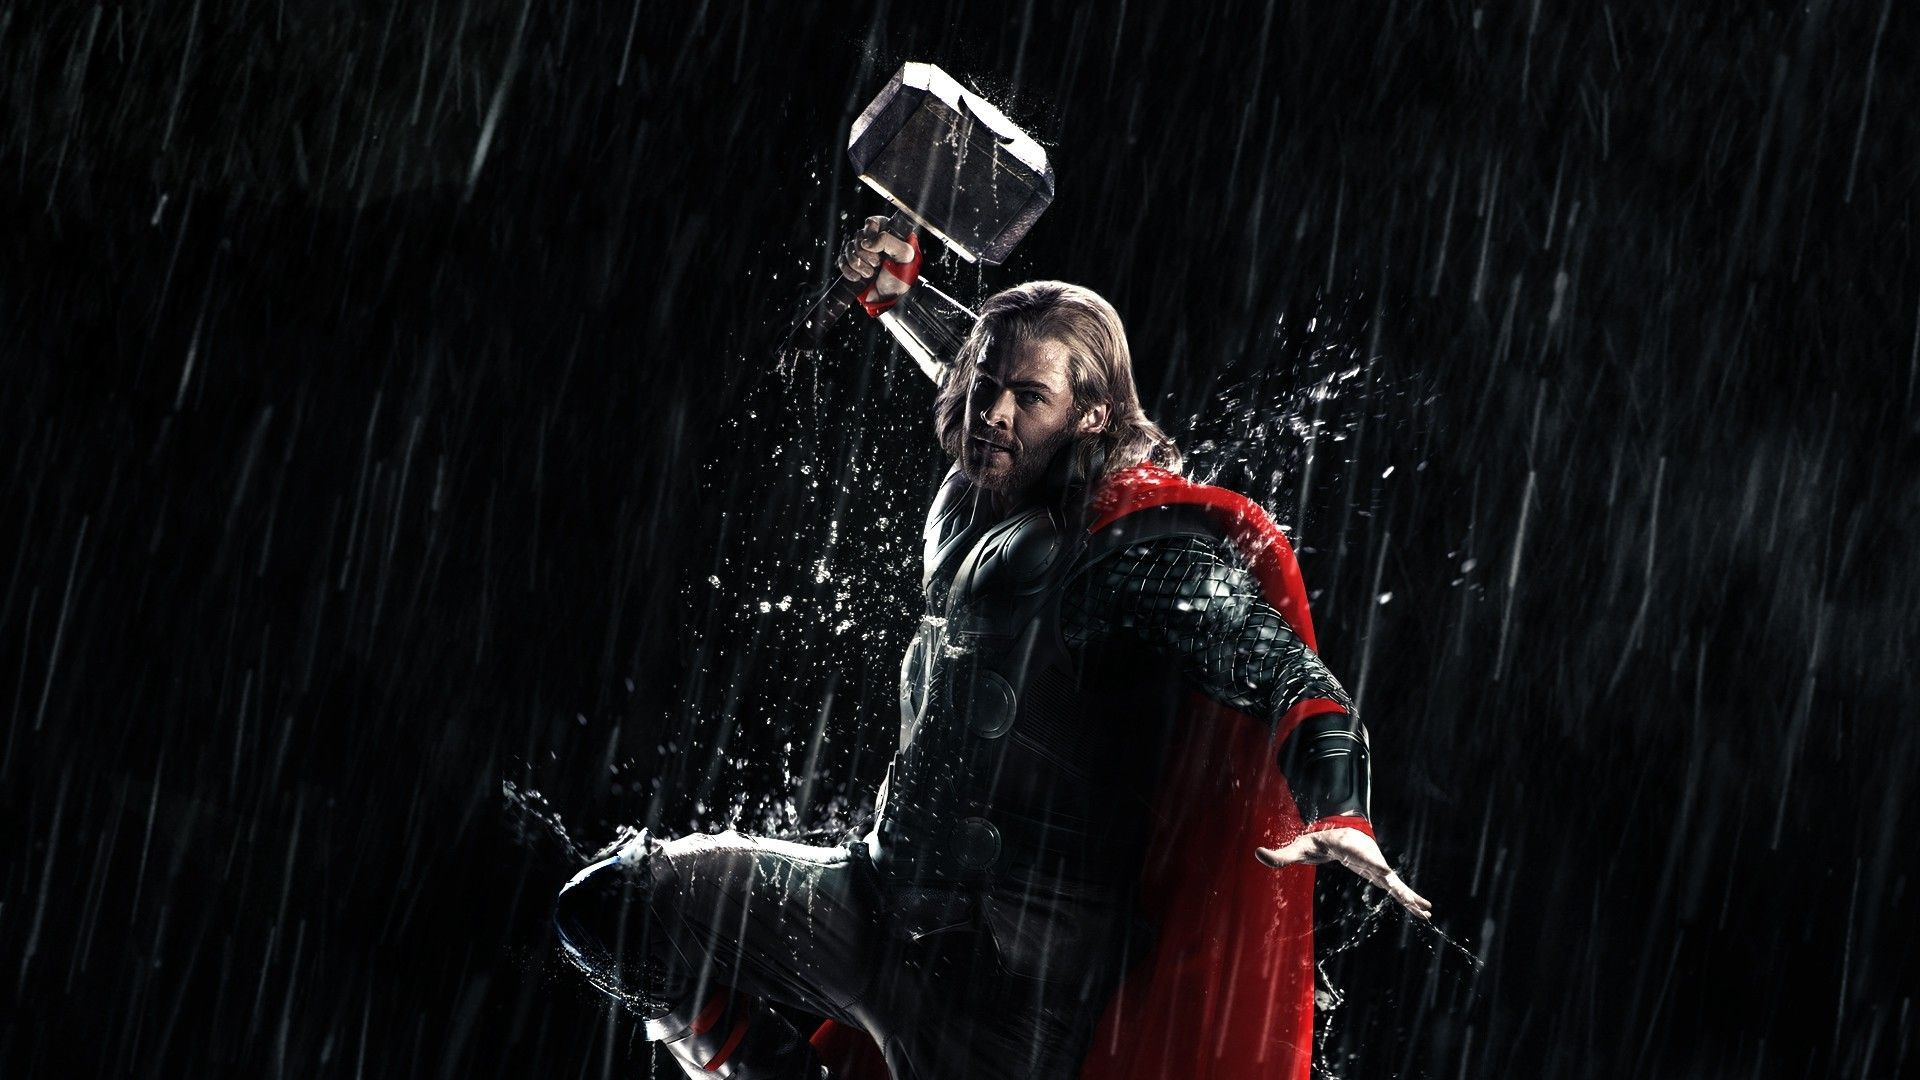 4k Thor Wallpapers Top Free 4k Thor Backgrounds